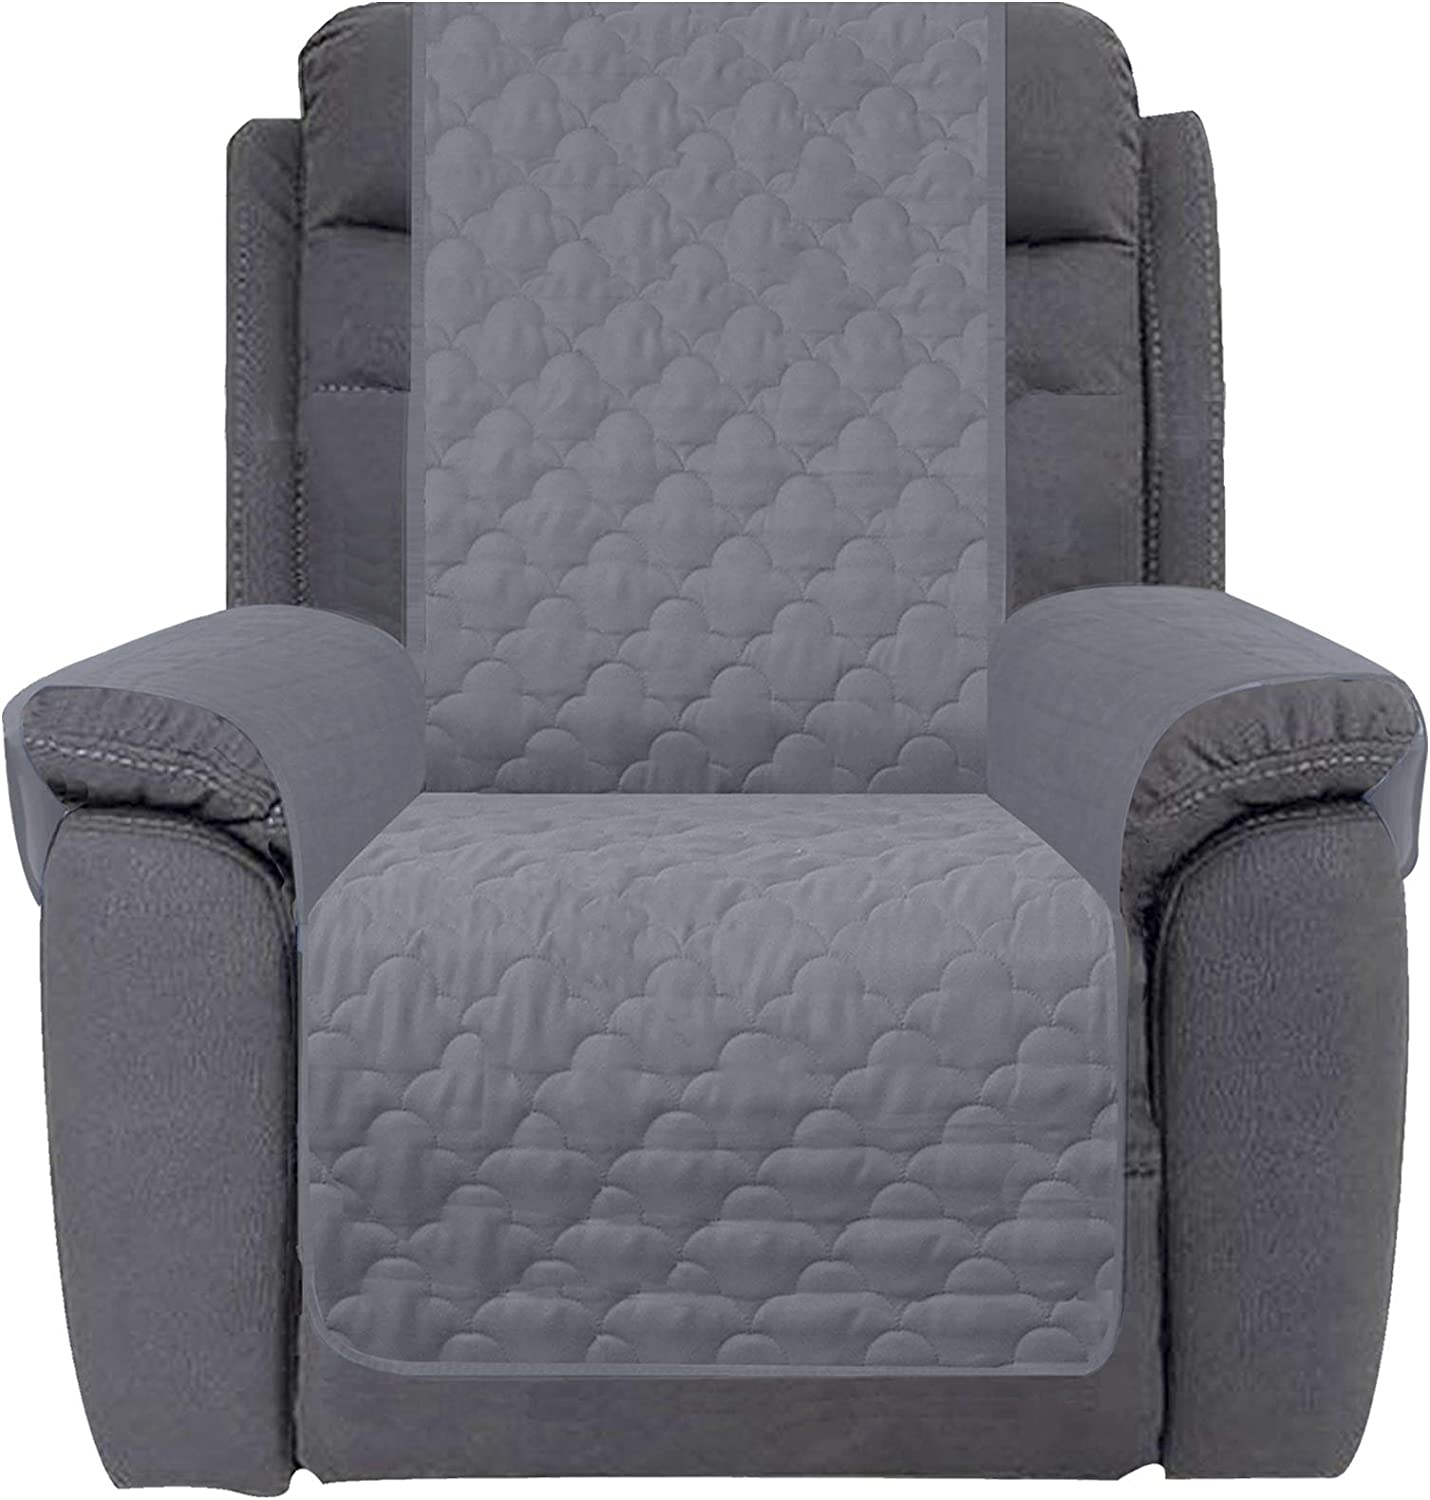 CHHKON Waterproof Nonslip Recliner Cover in Free shipping Stay Couch Dog Popular products Place